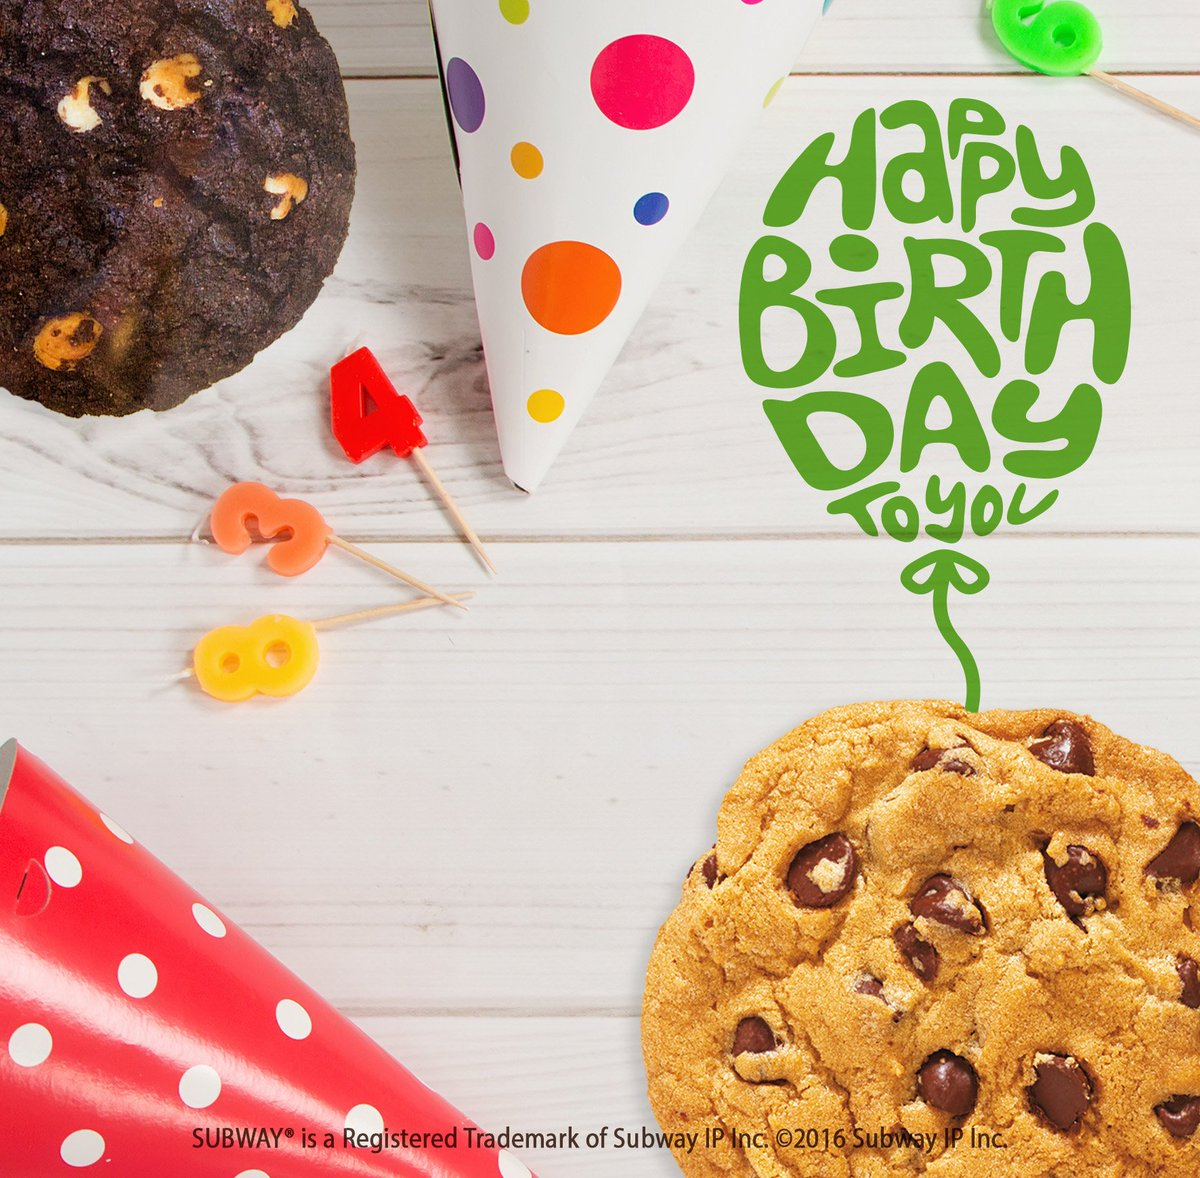 Subway® Uk On Twitter   A Birthday Treat That's On Us